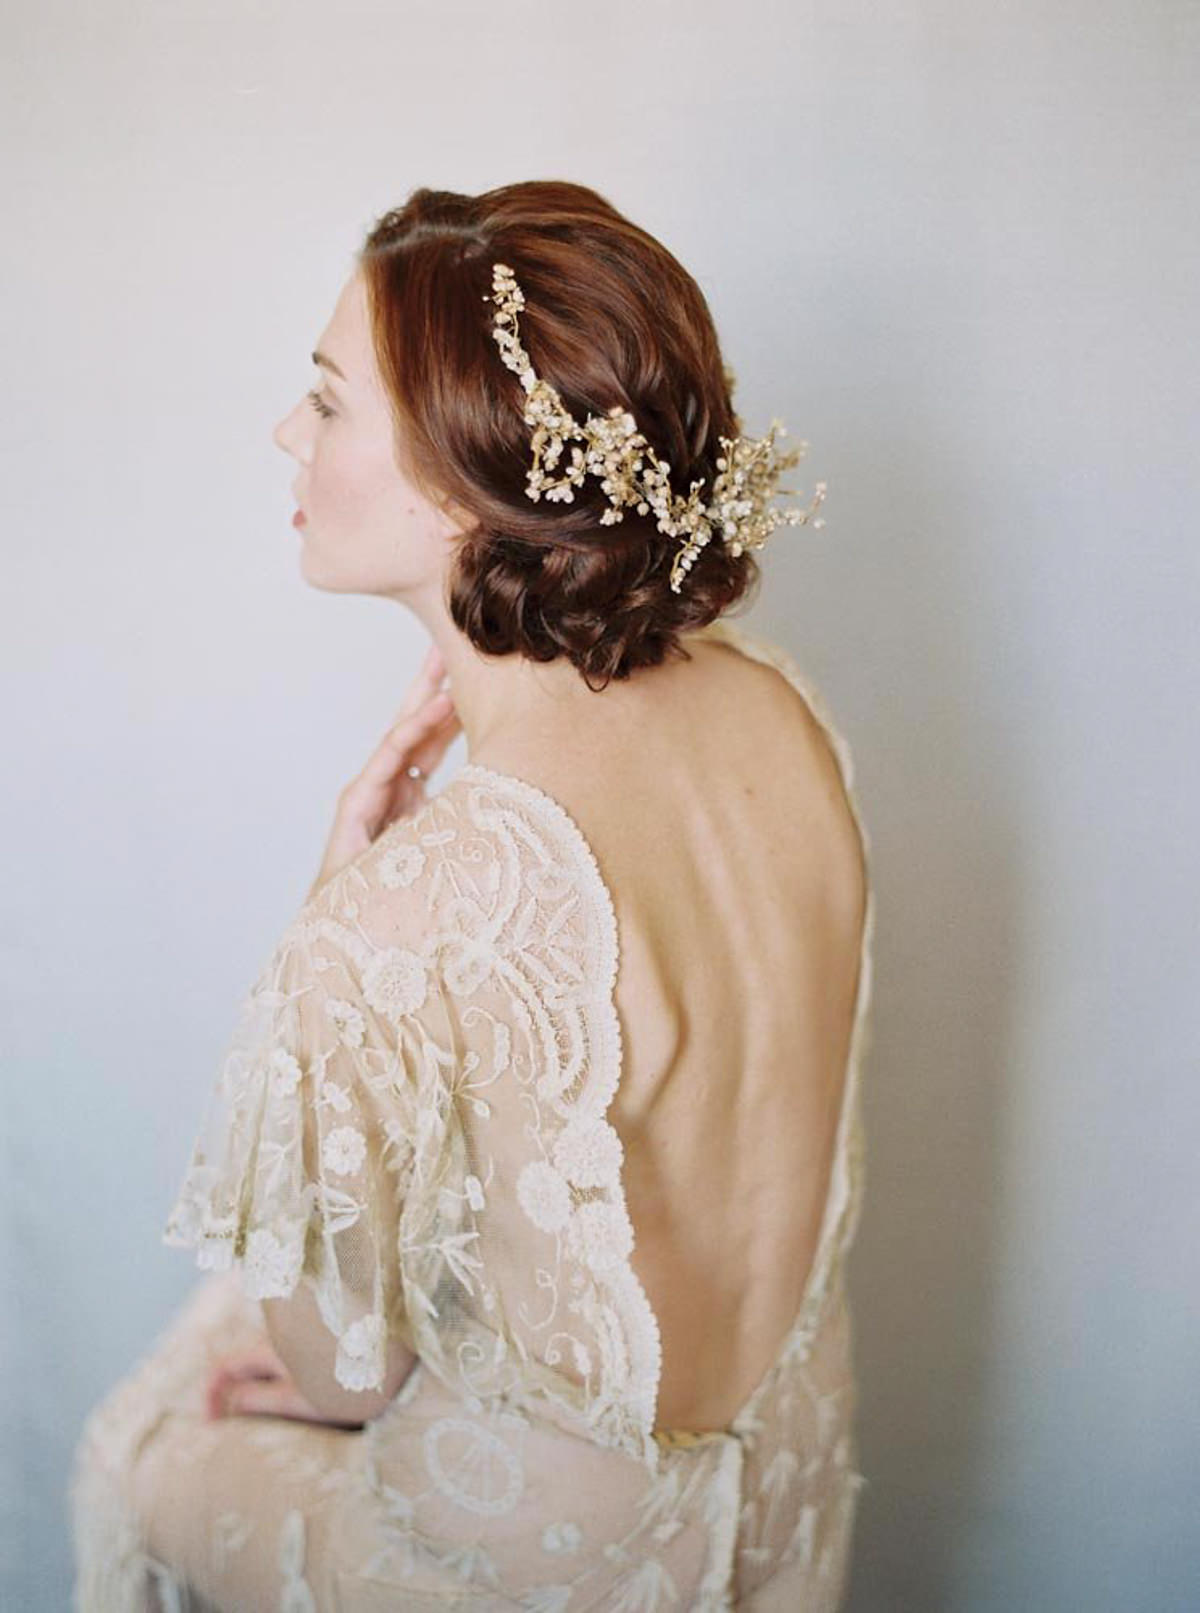 Fine Art Bridal Portrait editorial photo by Matoli Keely Photography